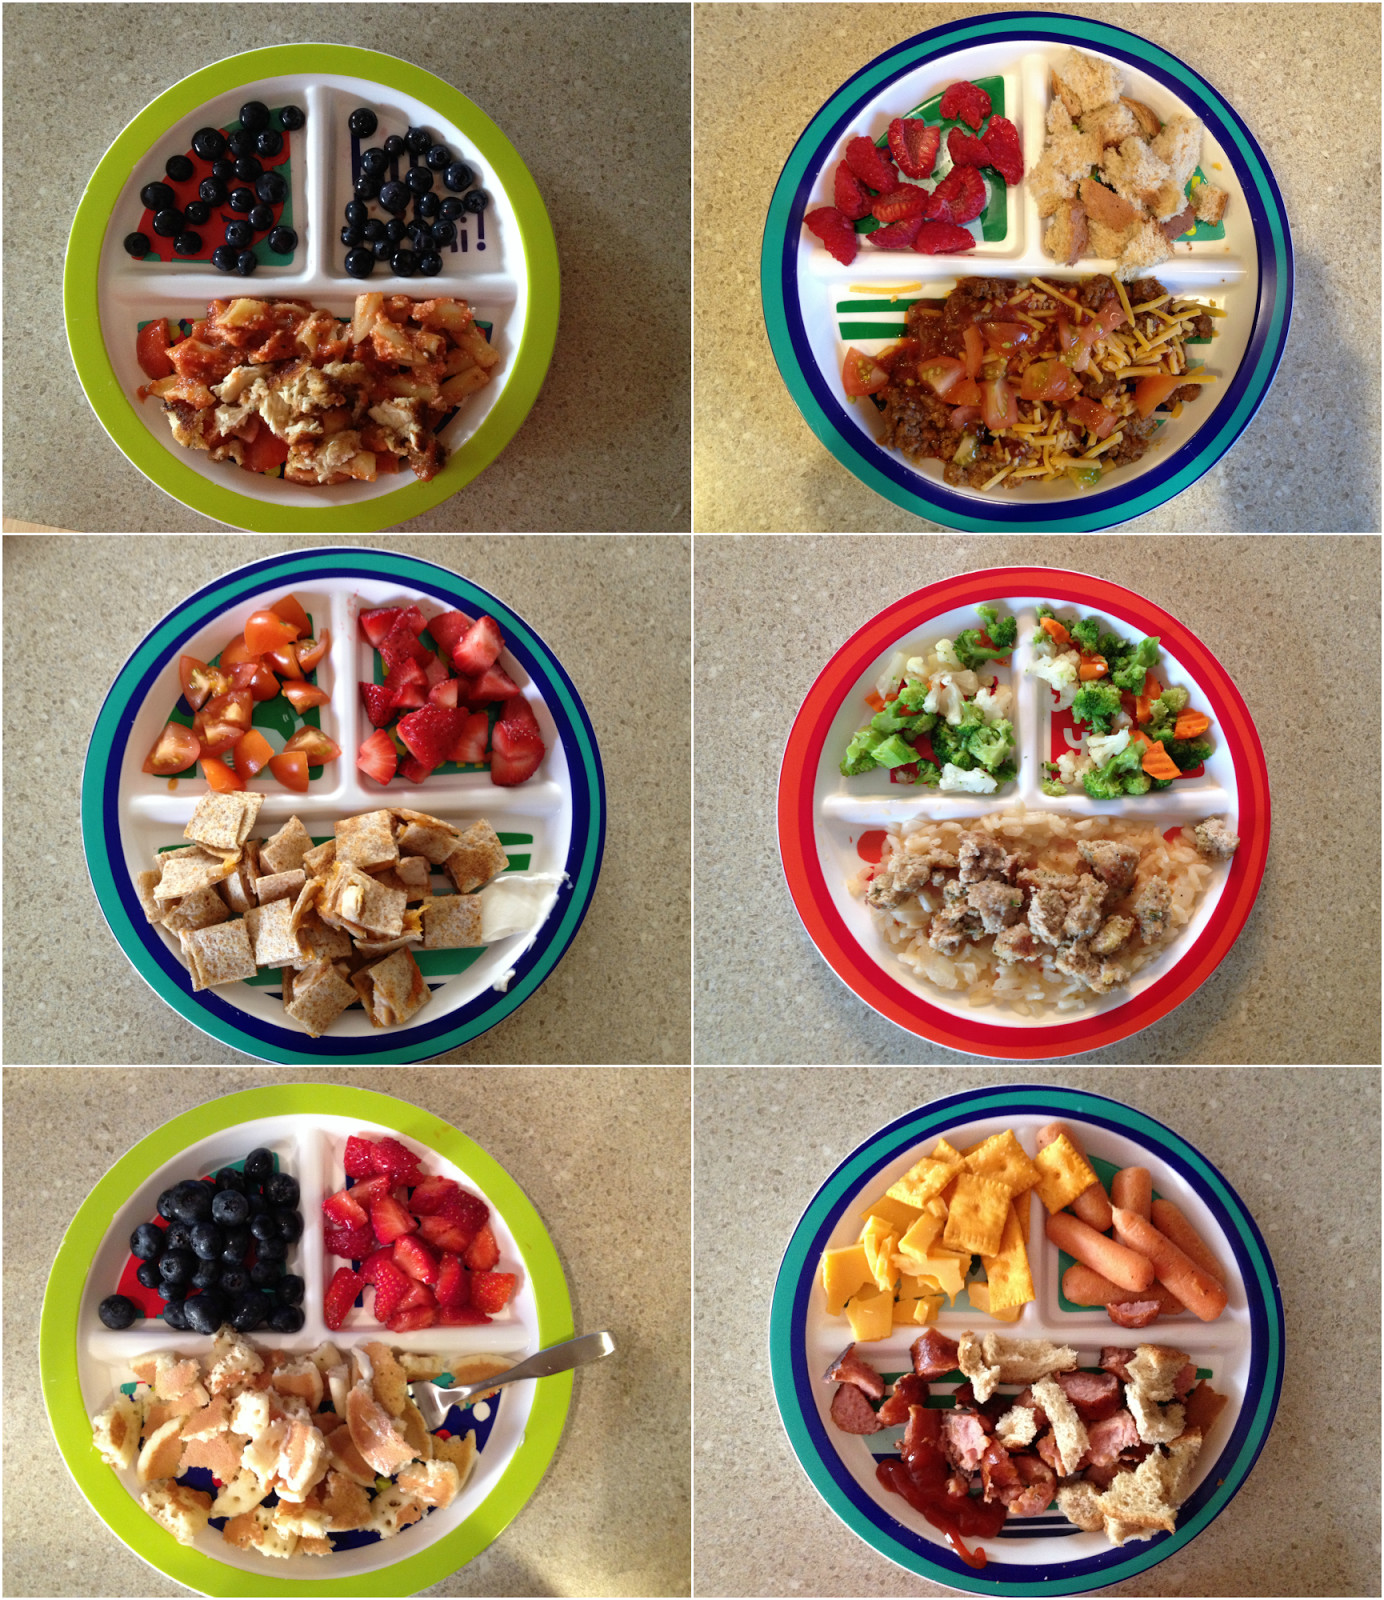 Healthy Snacks For One Year Olds  Dinner Ideas For Two Year Olds baby food recipes ideas